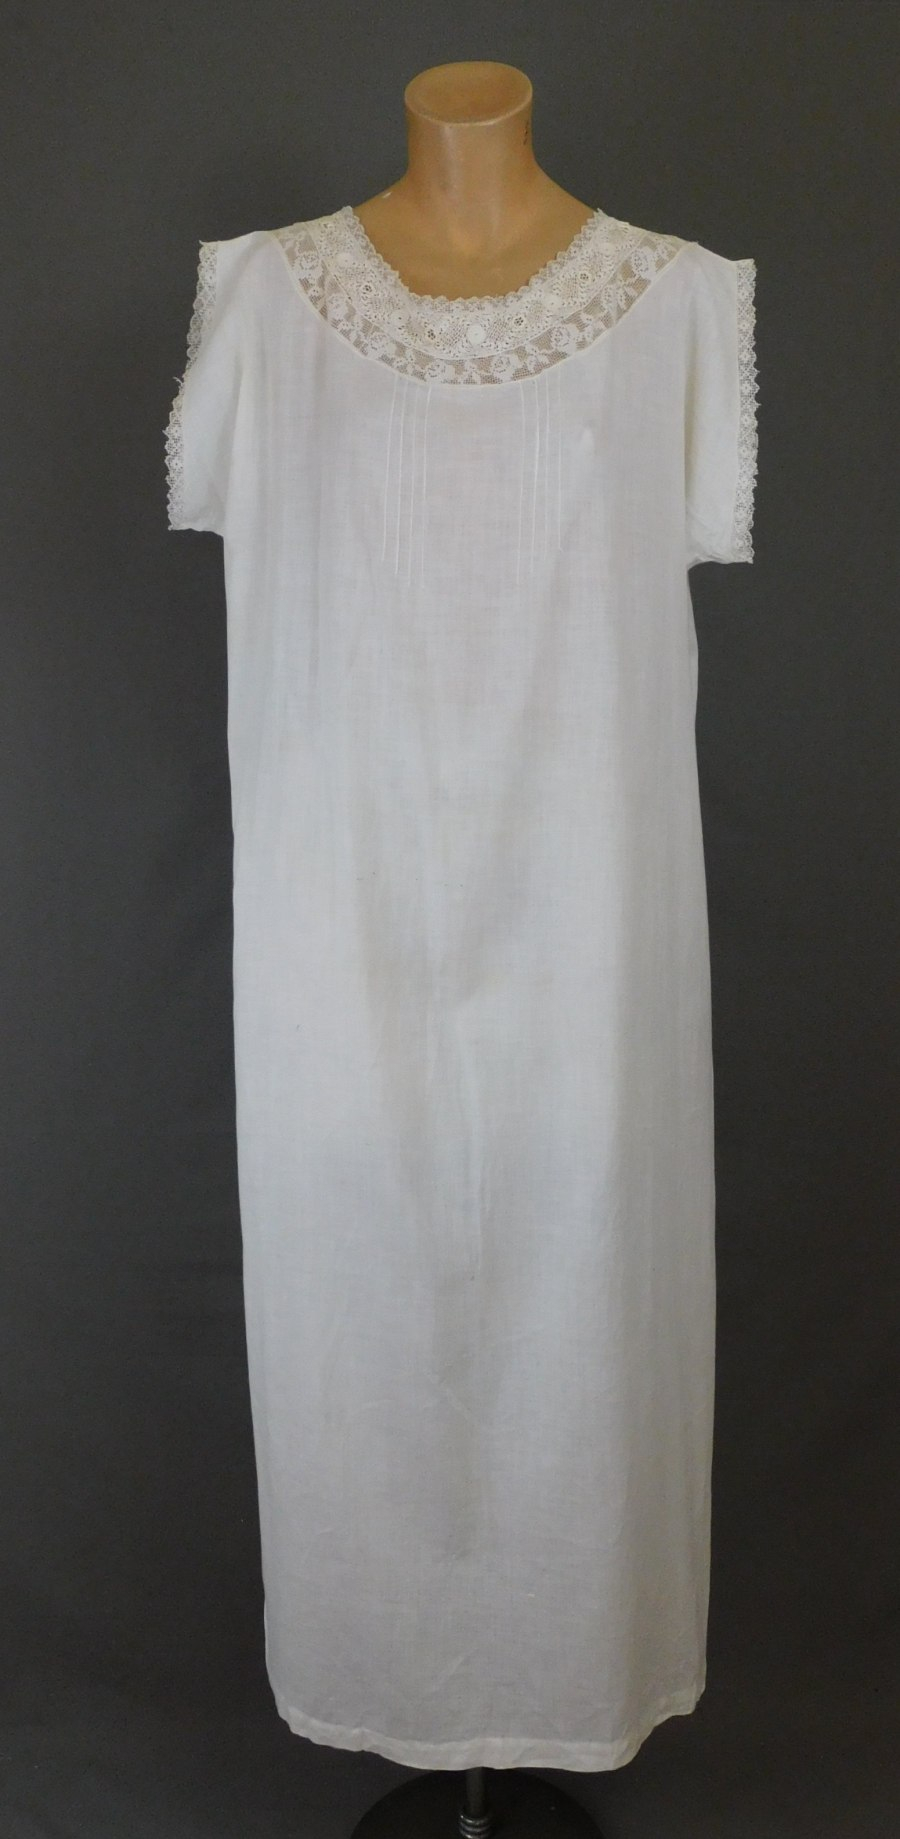 Vintage Cotton Nightgown with Lace Neckline, fits 38 to 42 inches Bust, Edwardian 1920s Crochet & Filet Lace Trim